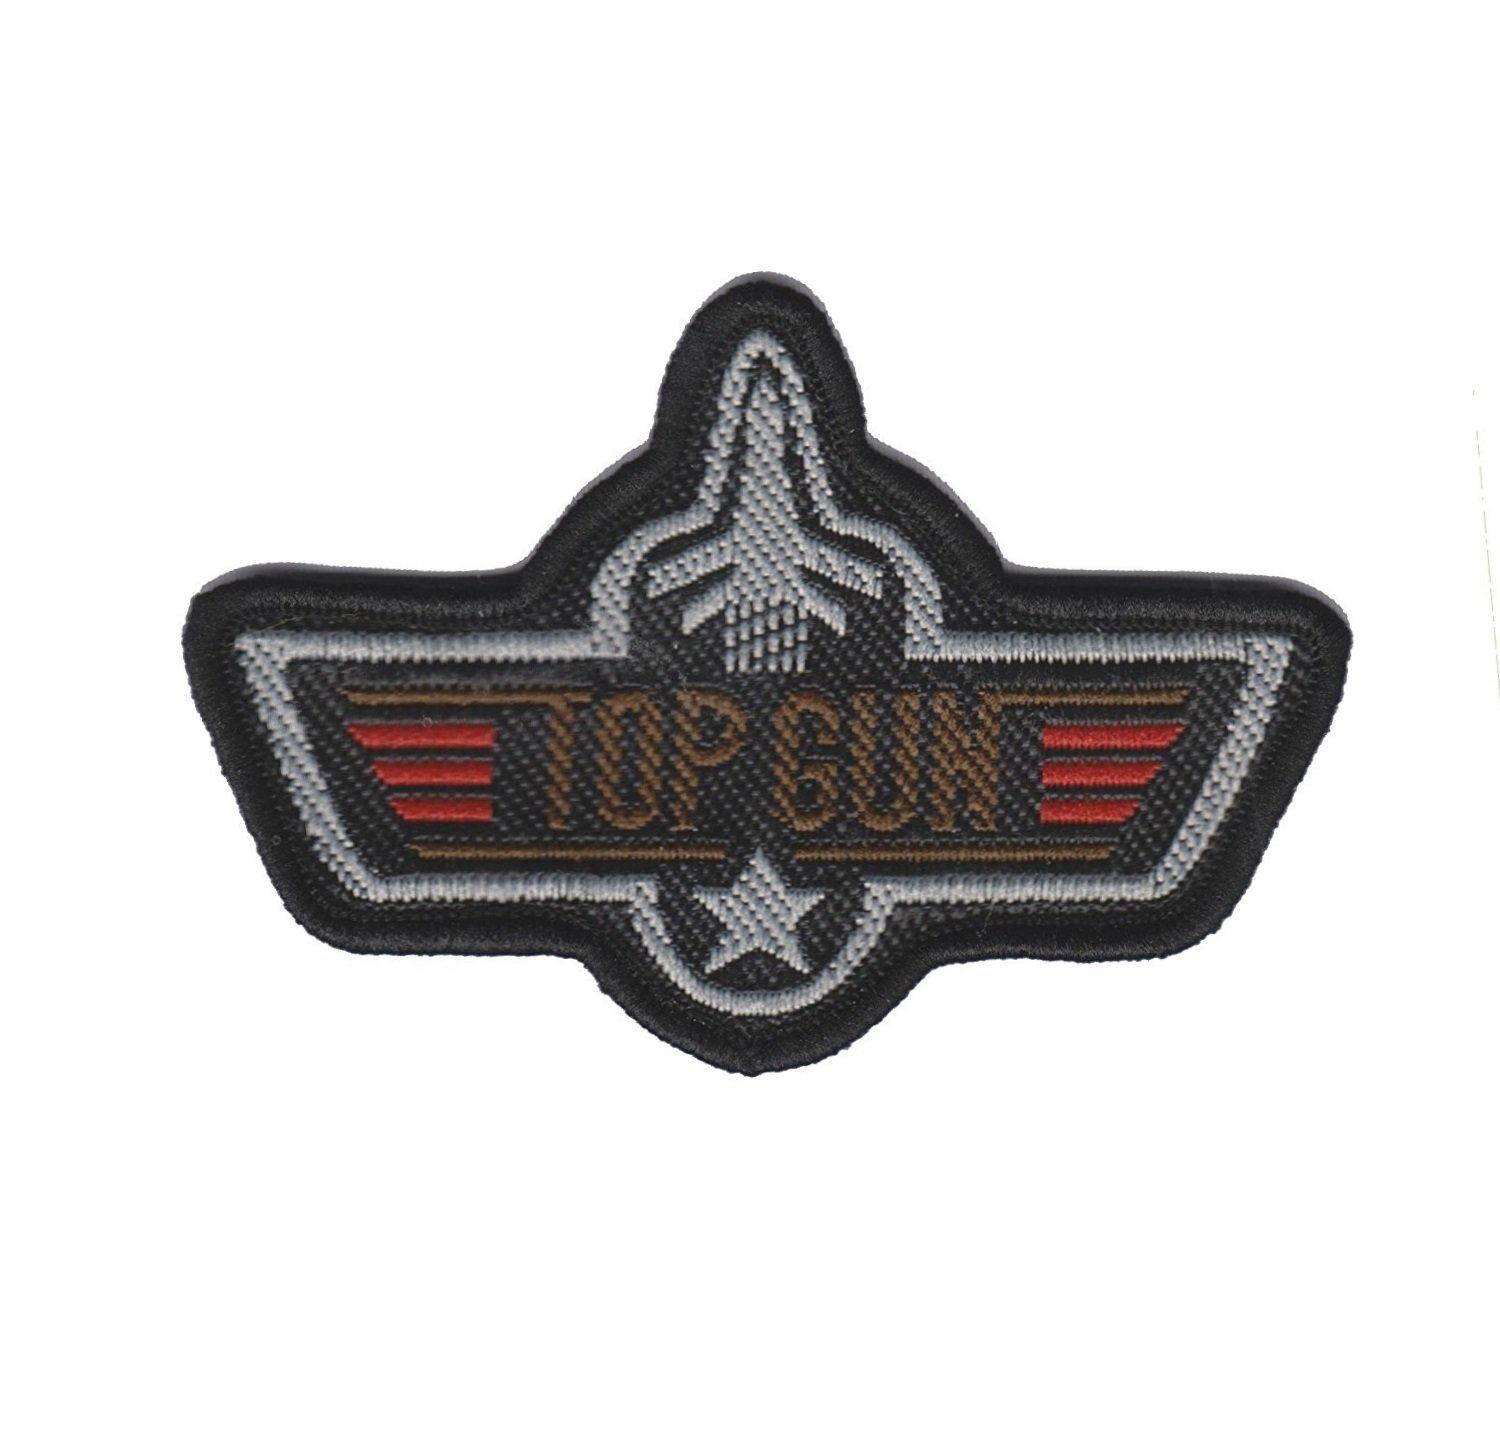 Top Gun Iron on or Sew on Embroidered Patch